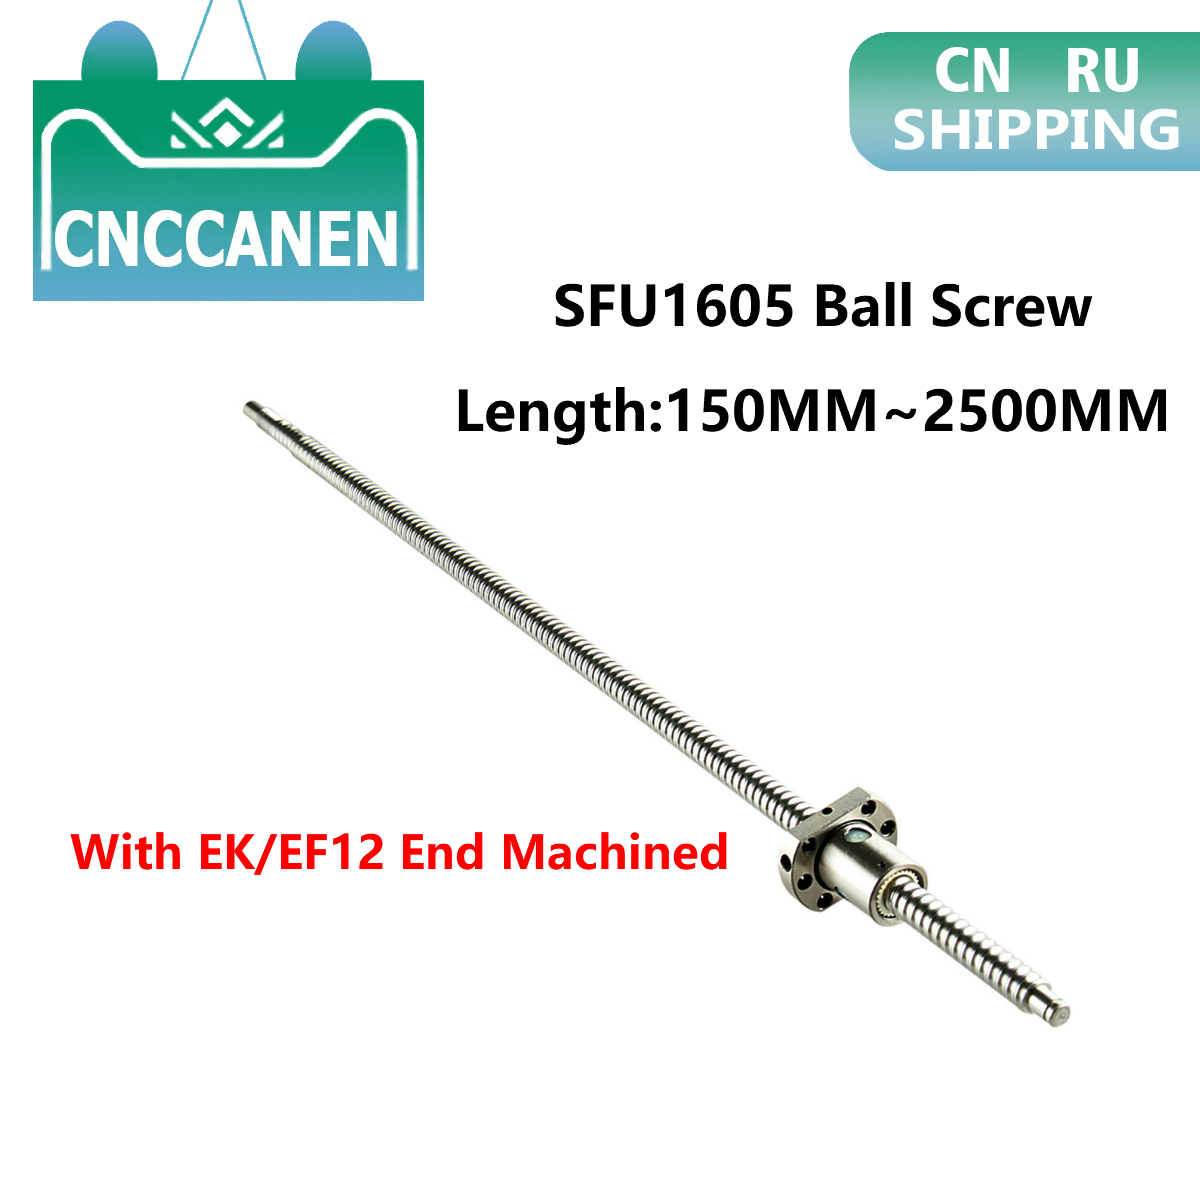 Ballscew SFU1605-150mm 200 300 500 600 800 1200 1500 2000 2500 Mm C7 Ball Screw With Single Ball Nut EK/EF12 End Machined CNC